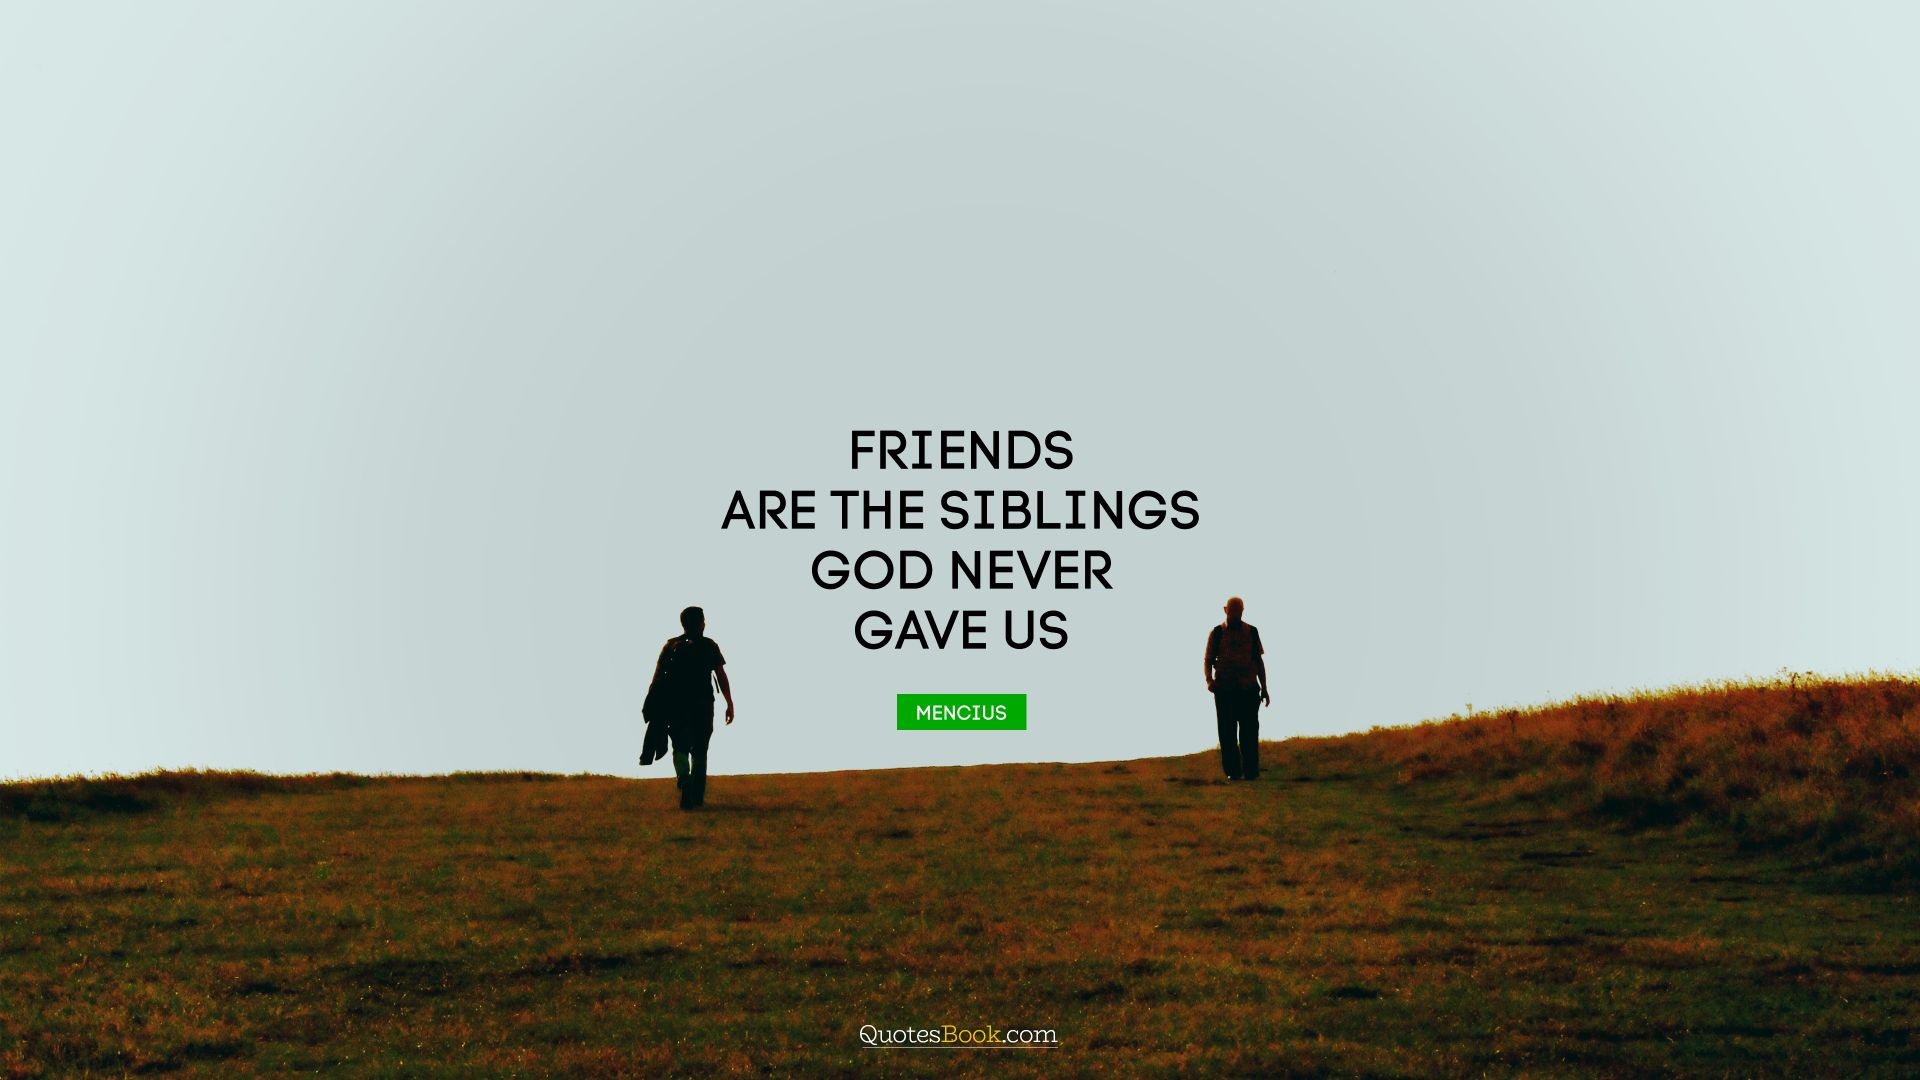 Friends are the siblings God never gave us. - Quote by Mencius